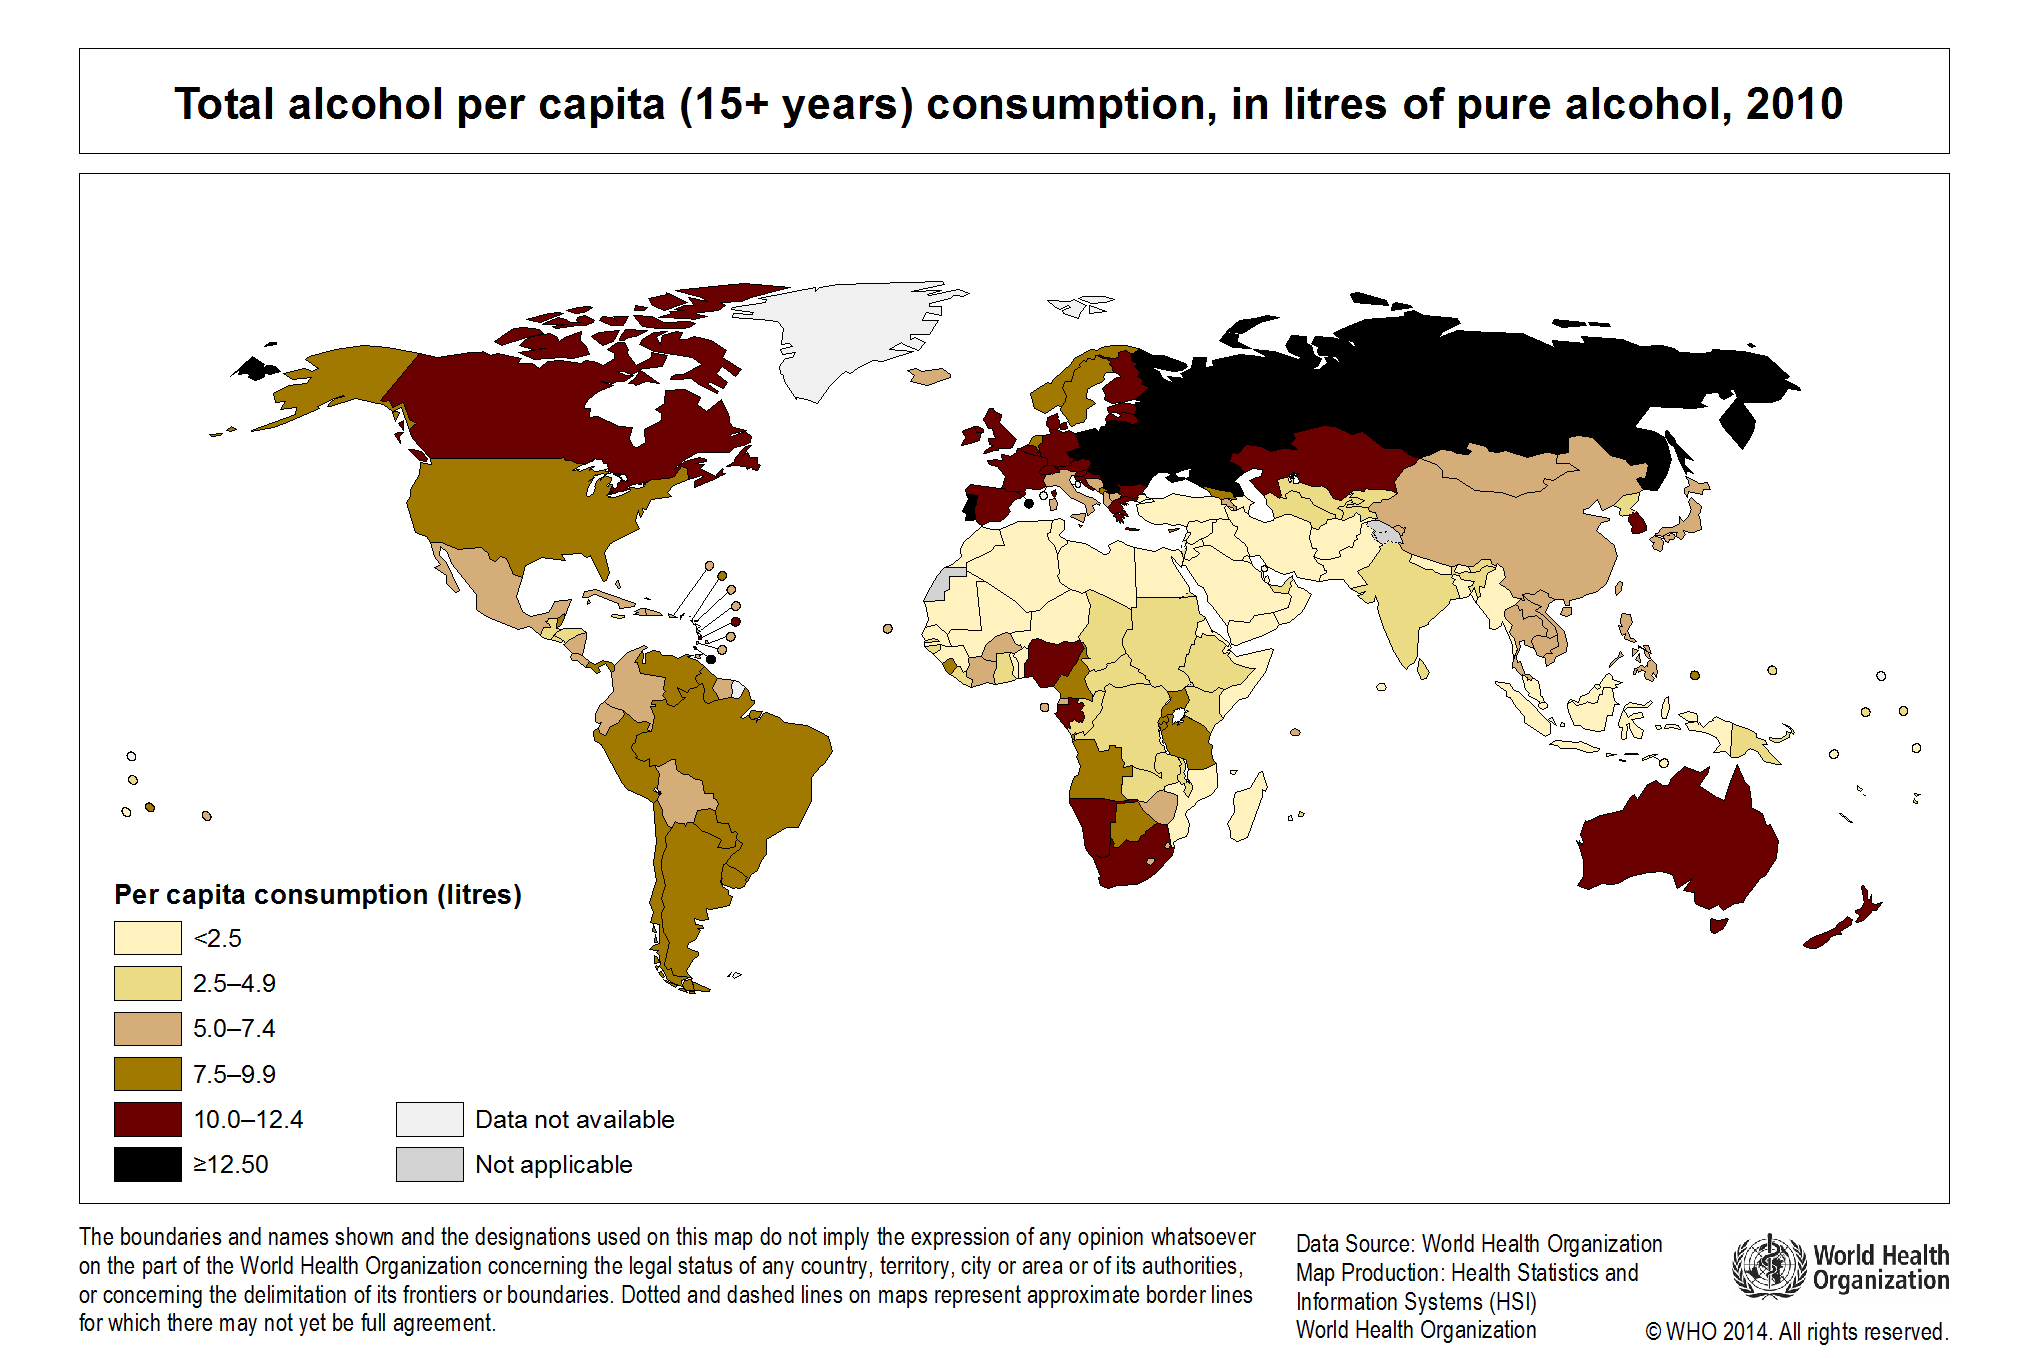 Global alcohol consumption 2010